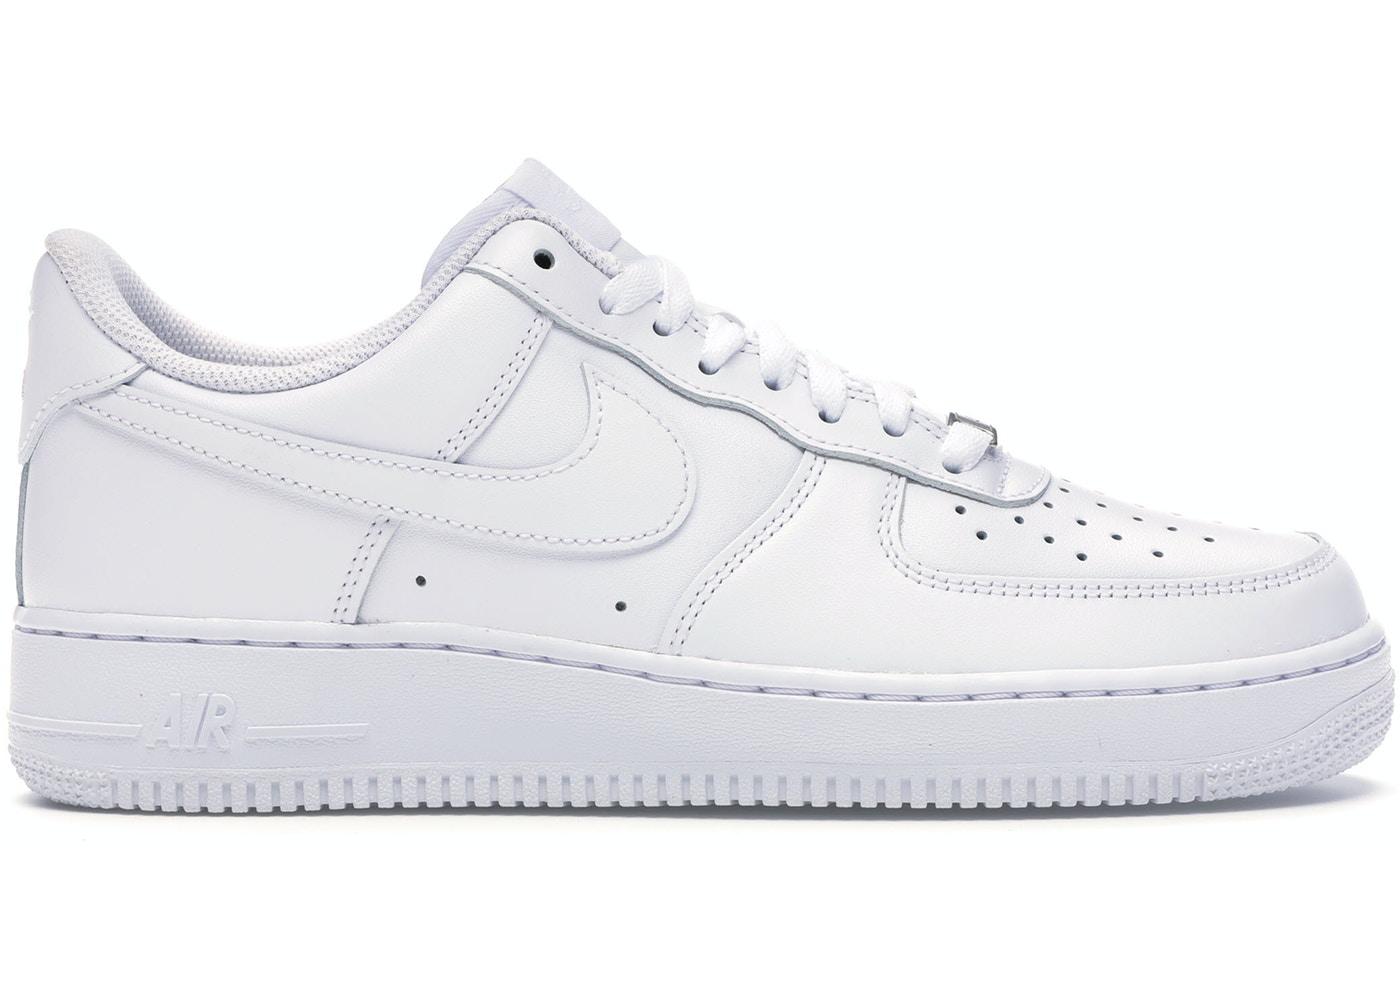 Jarra talento Coro  Nike Air Force 1 Low White '07 - 315122-111